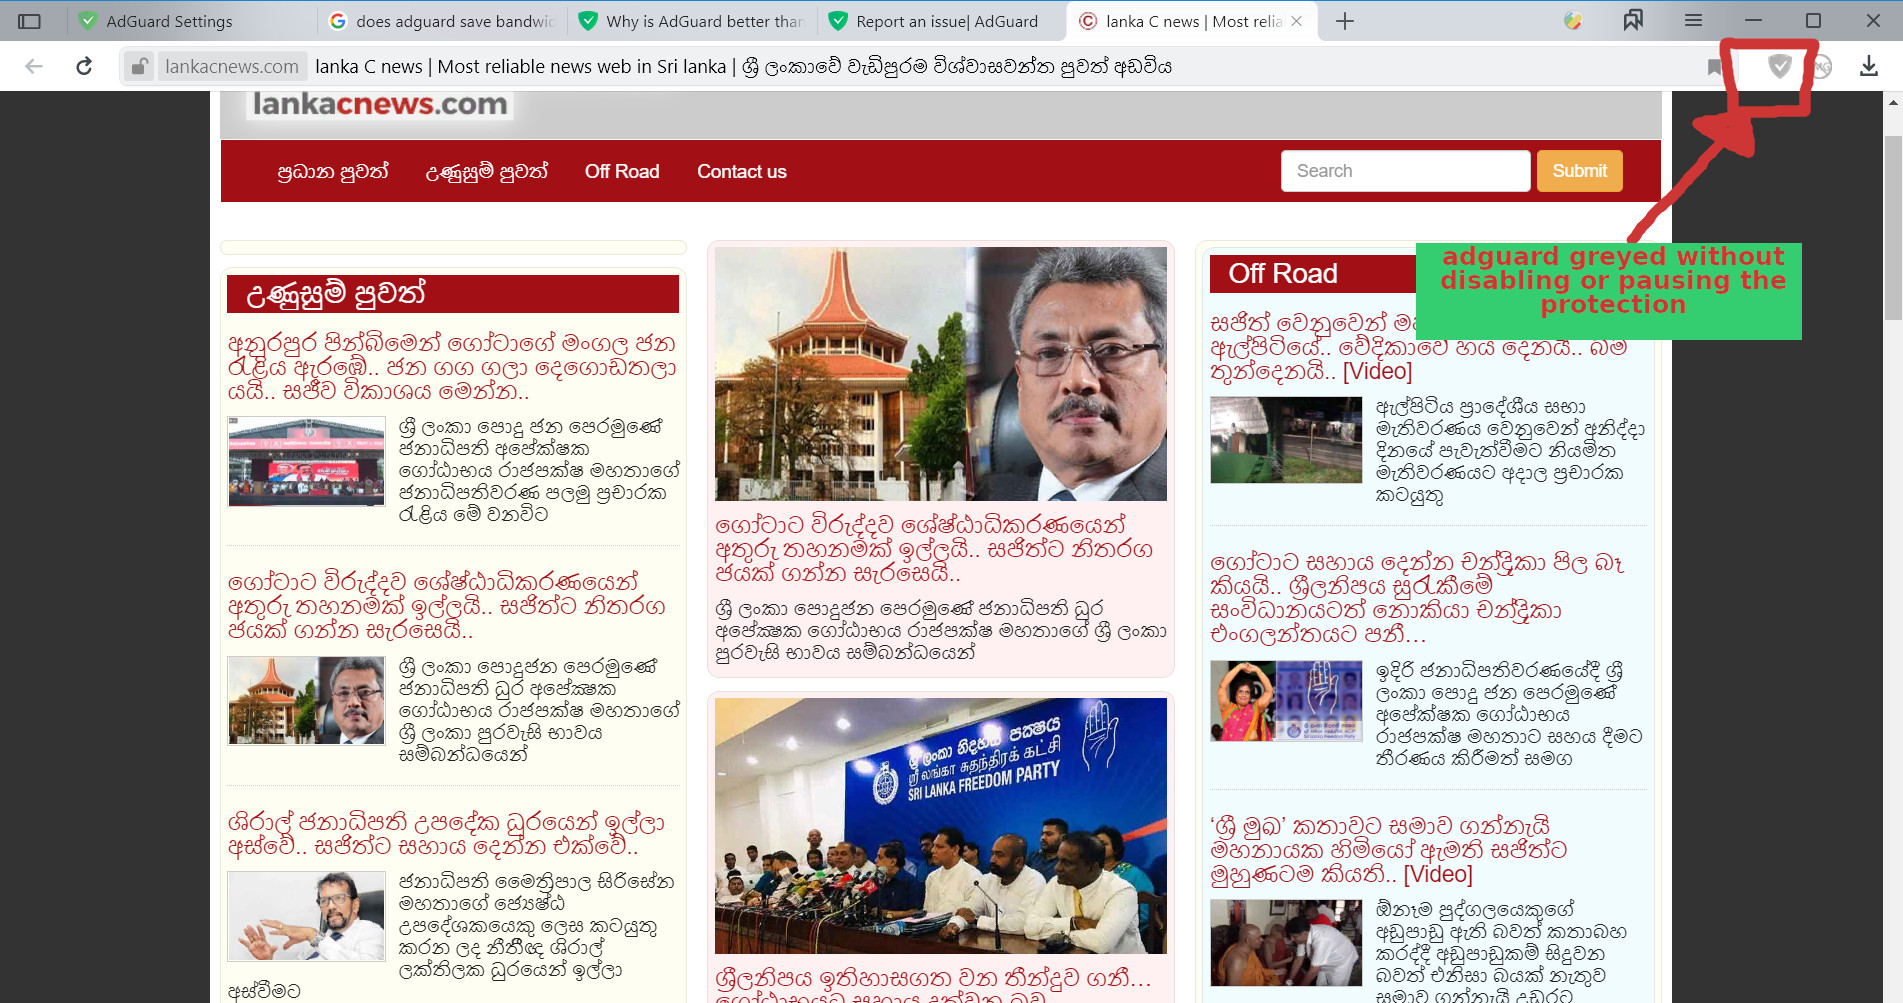 Lankacnews Com Issue 42042 Adguardteam Adguardfilters Github Looking for lanka c news popular content, reviews and catchy facts? github